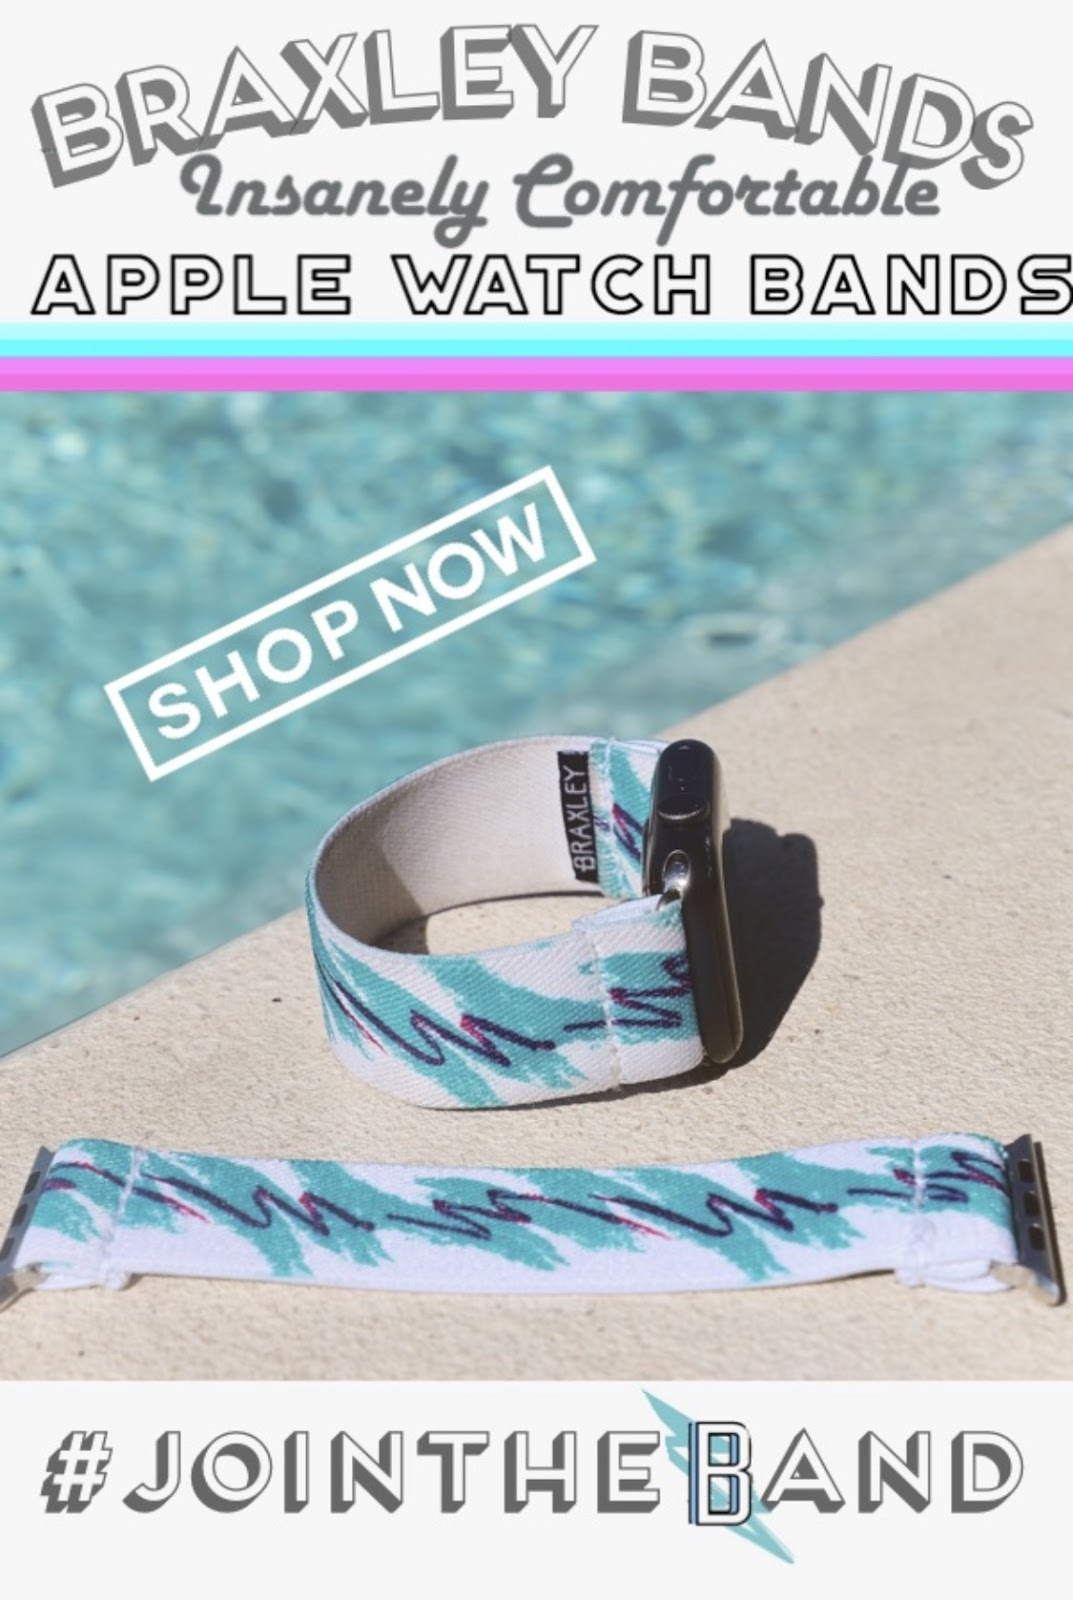 how-we-turned-20-into-a-100k-month-company-making-elastic-apple-watch-bands